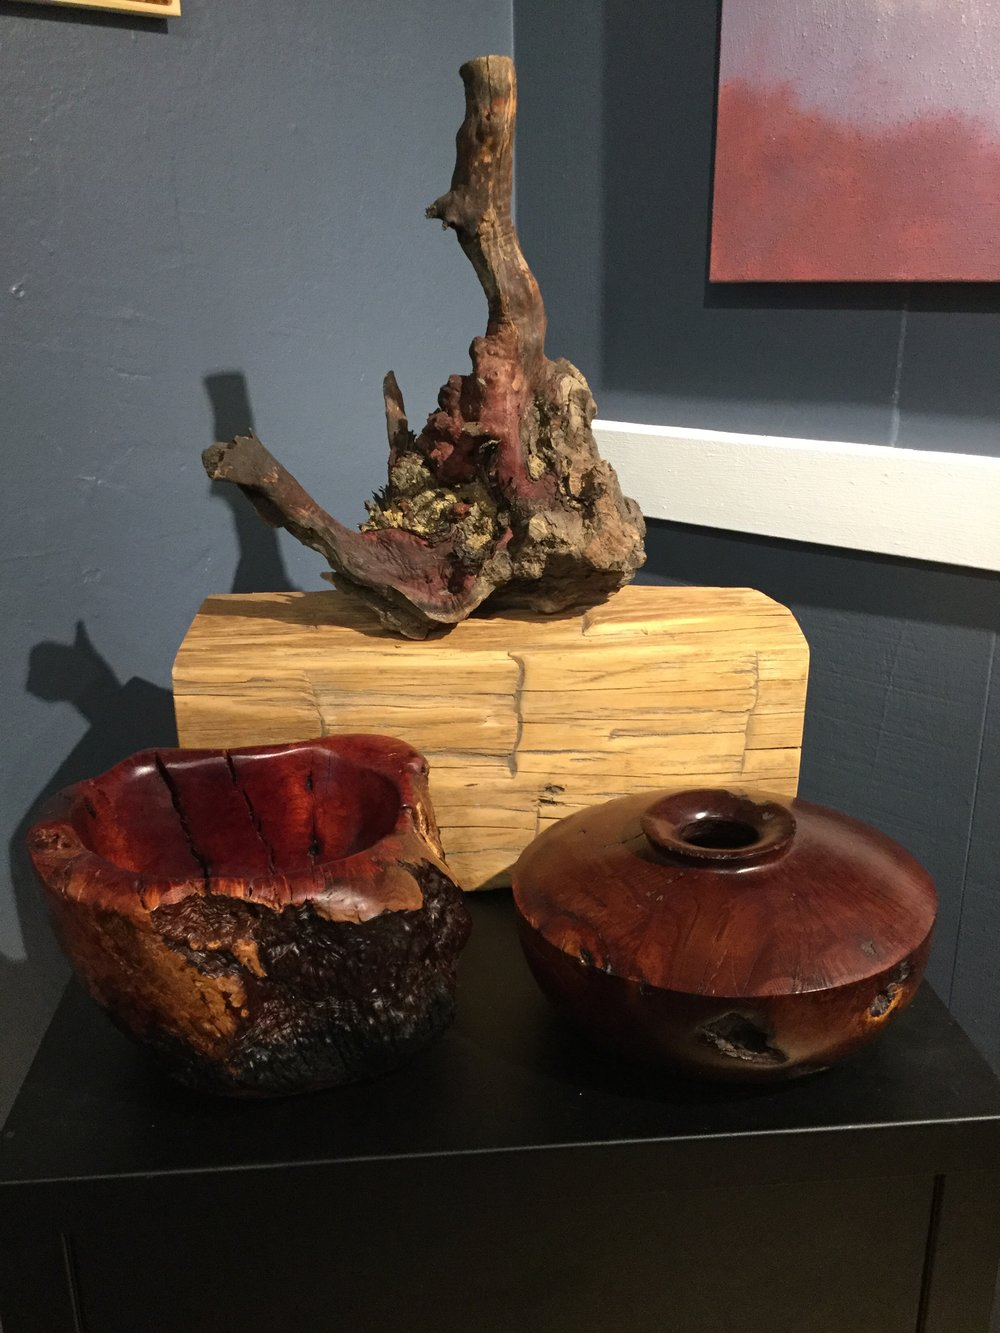 From root to bowl, it takes the eye of an artist!